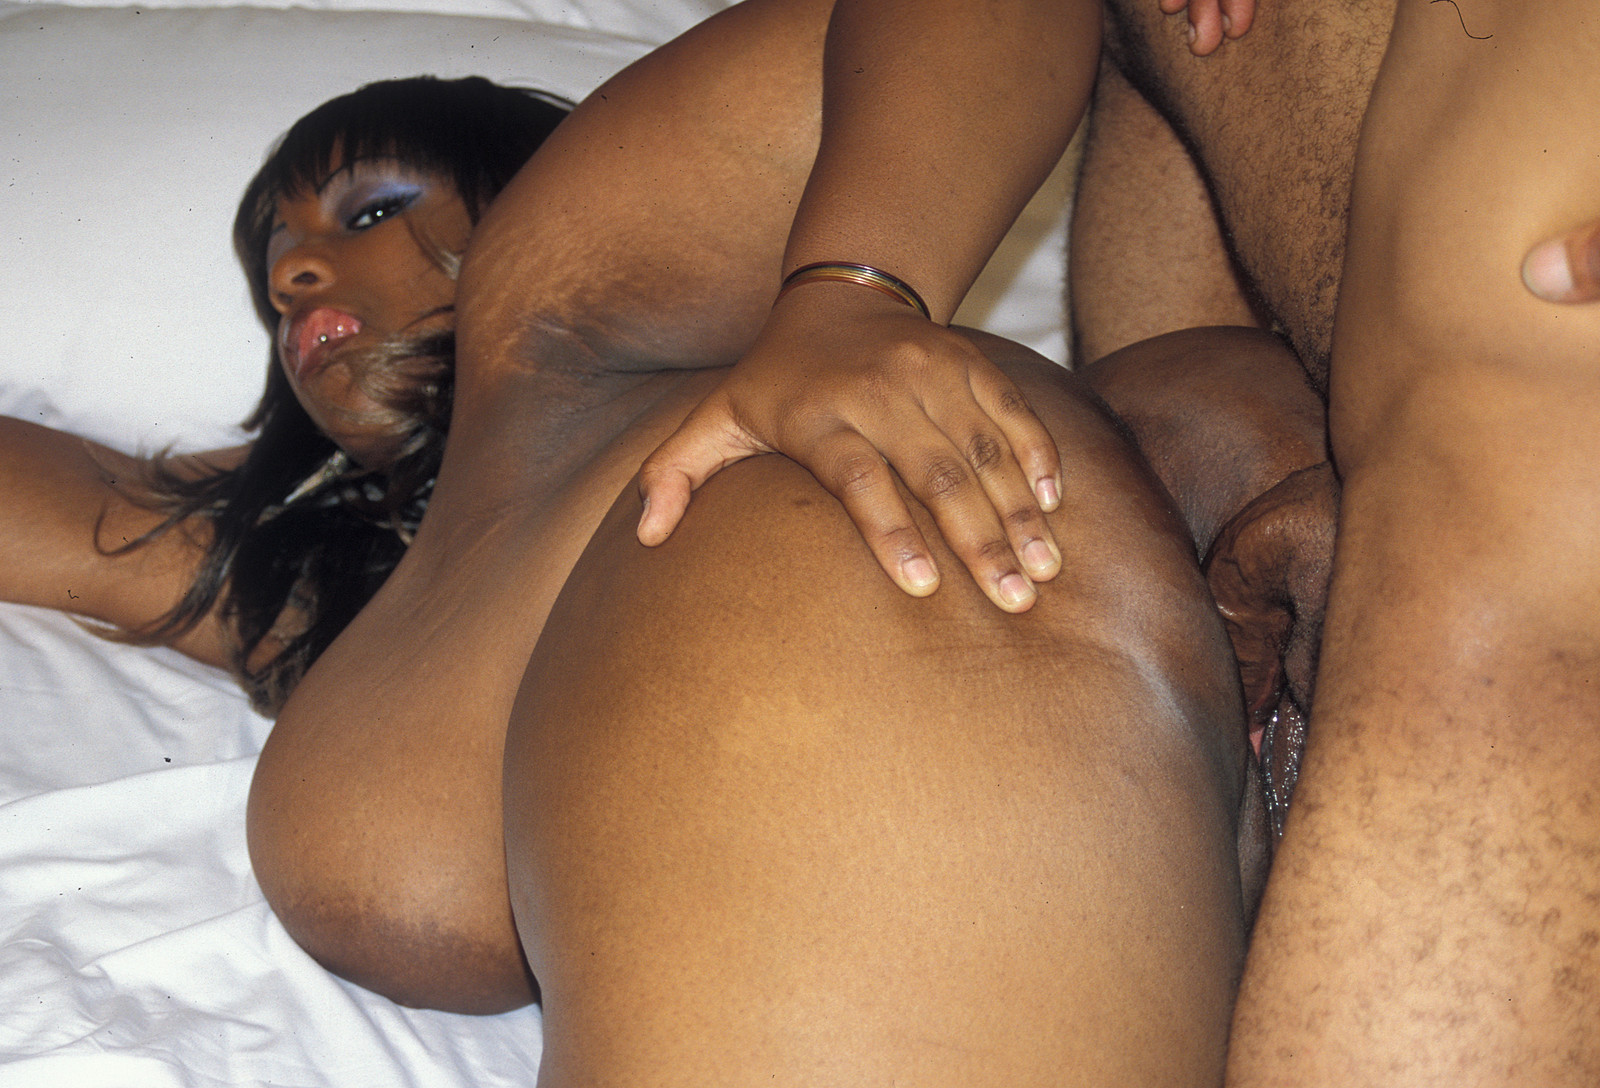 Assured, Breeding nudist black women.com thank